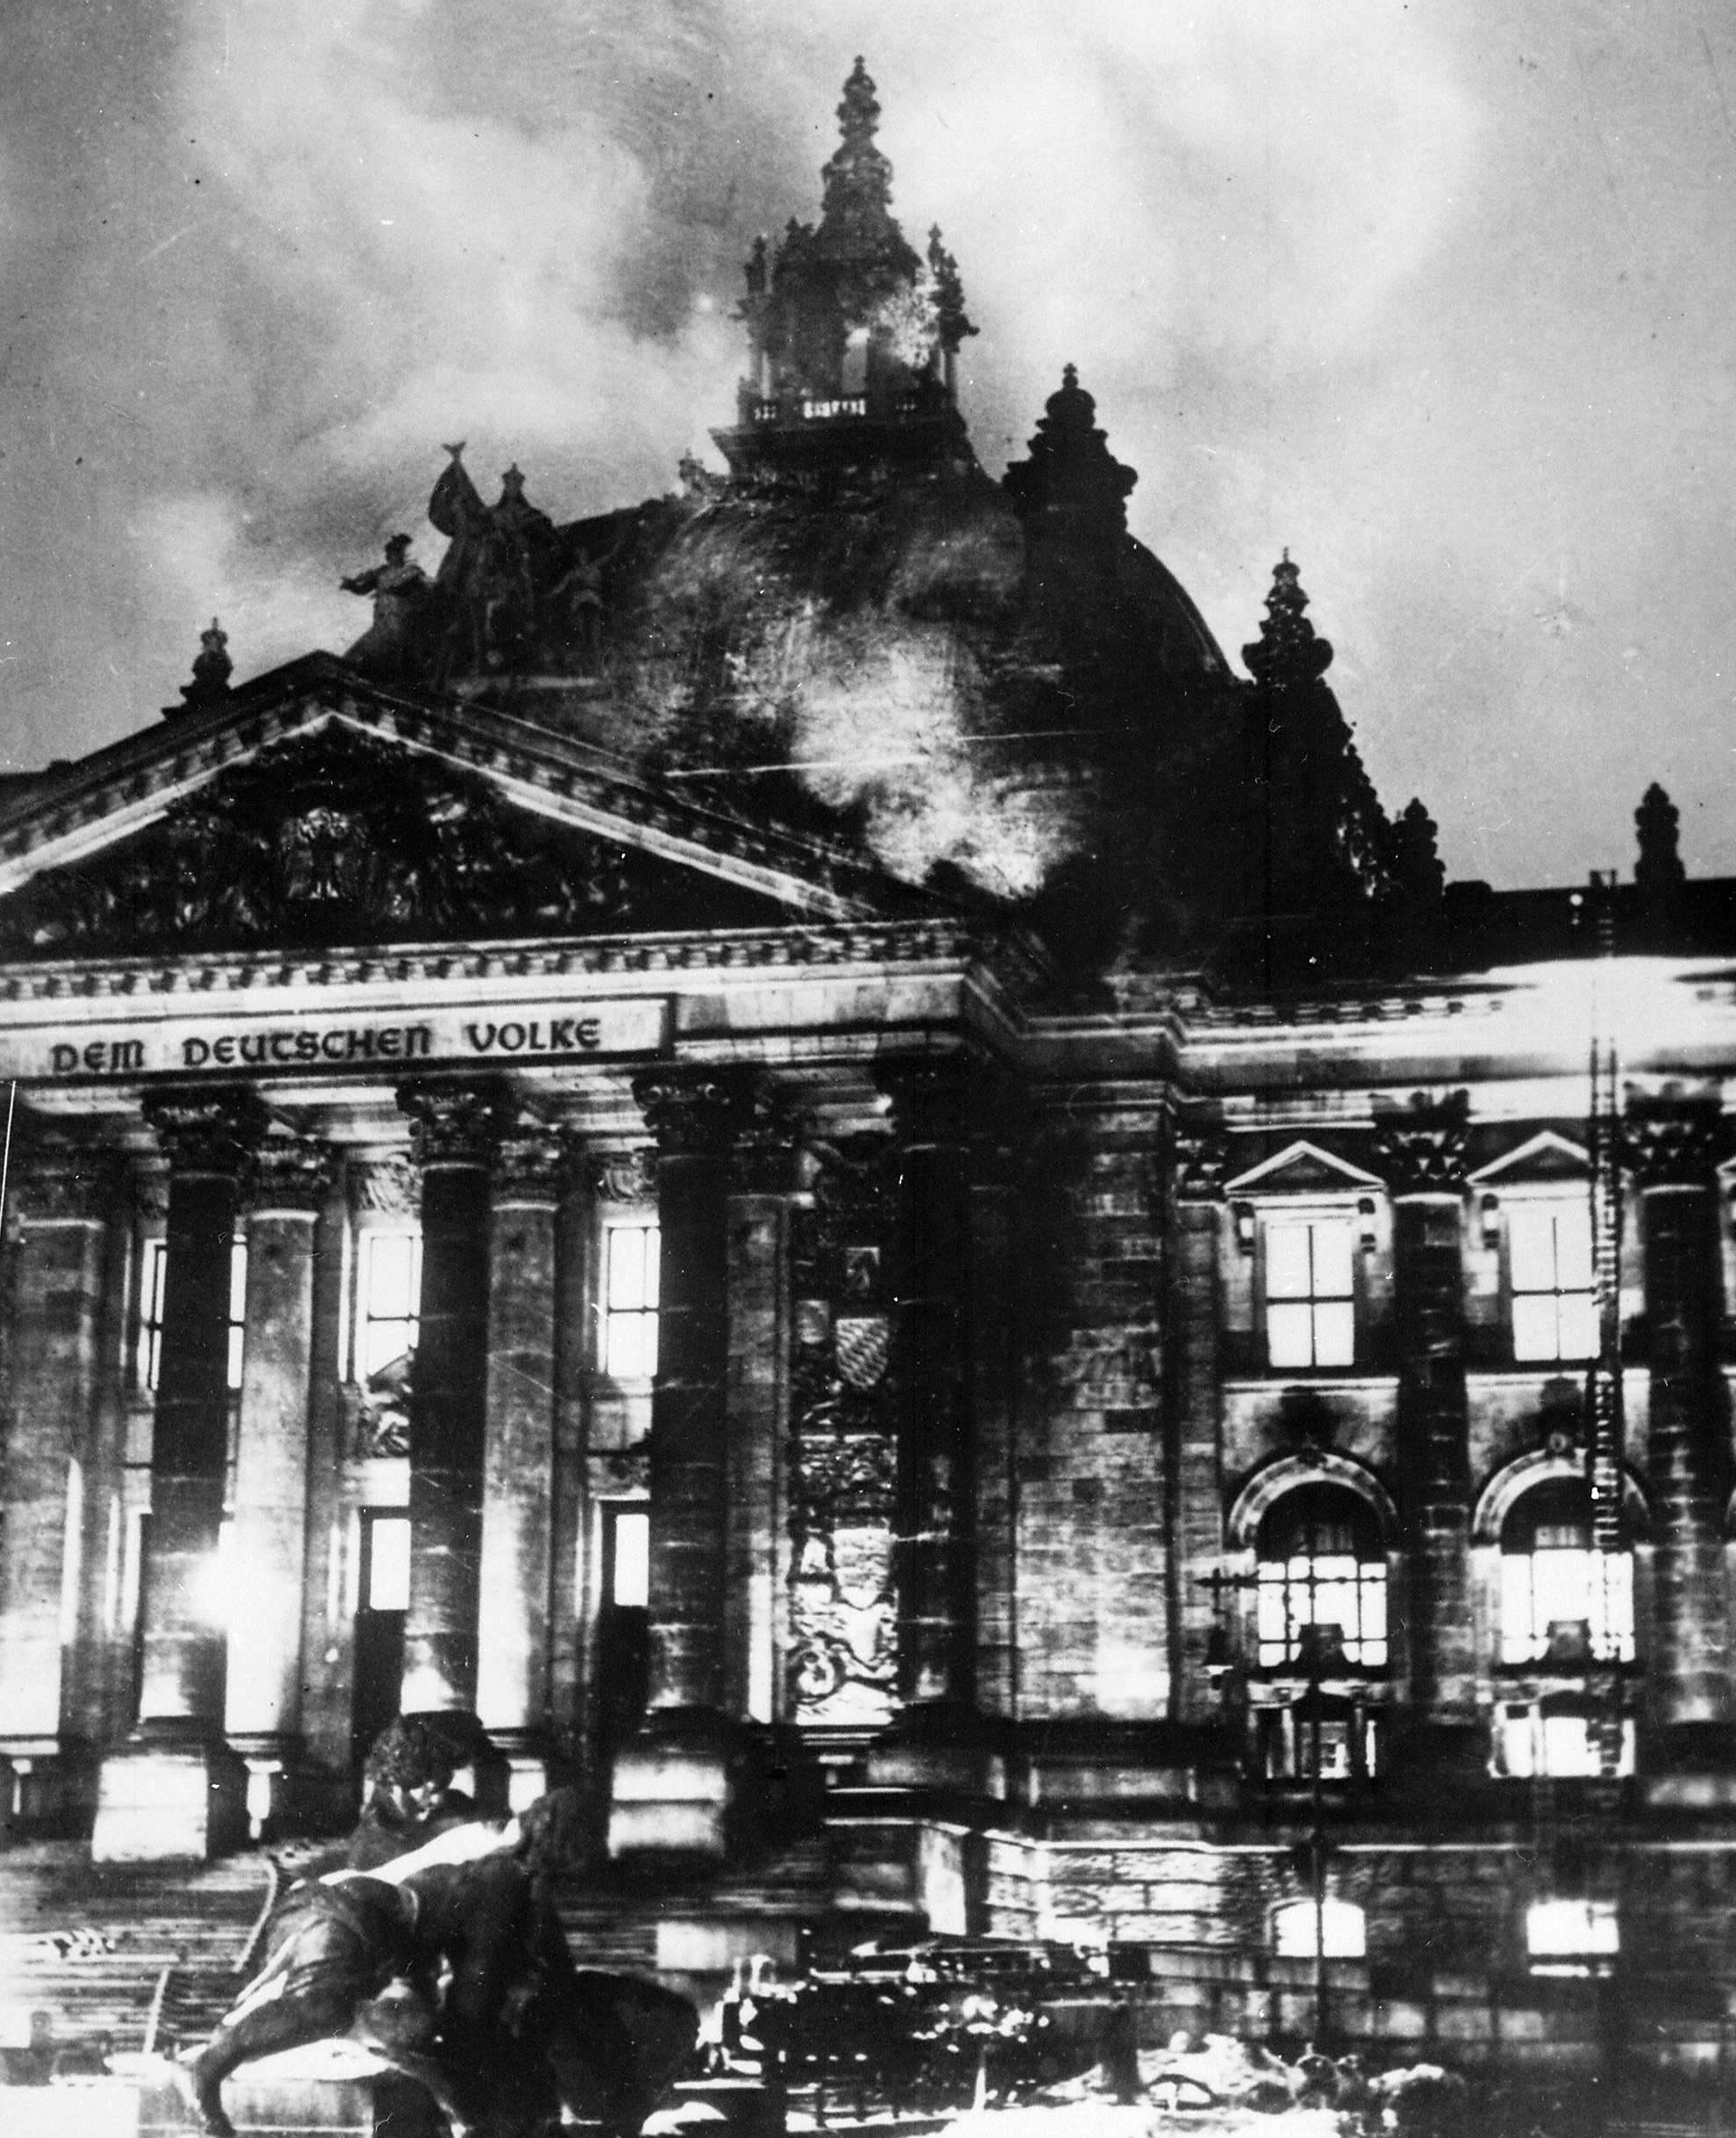 https://i0.wp.com/upload.wikimedia.org/wikipedia/commons/2/20/Reichstagsbrand.jpg